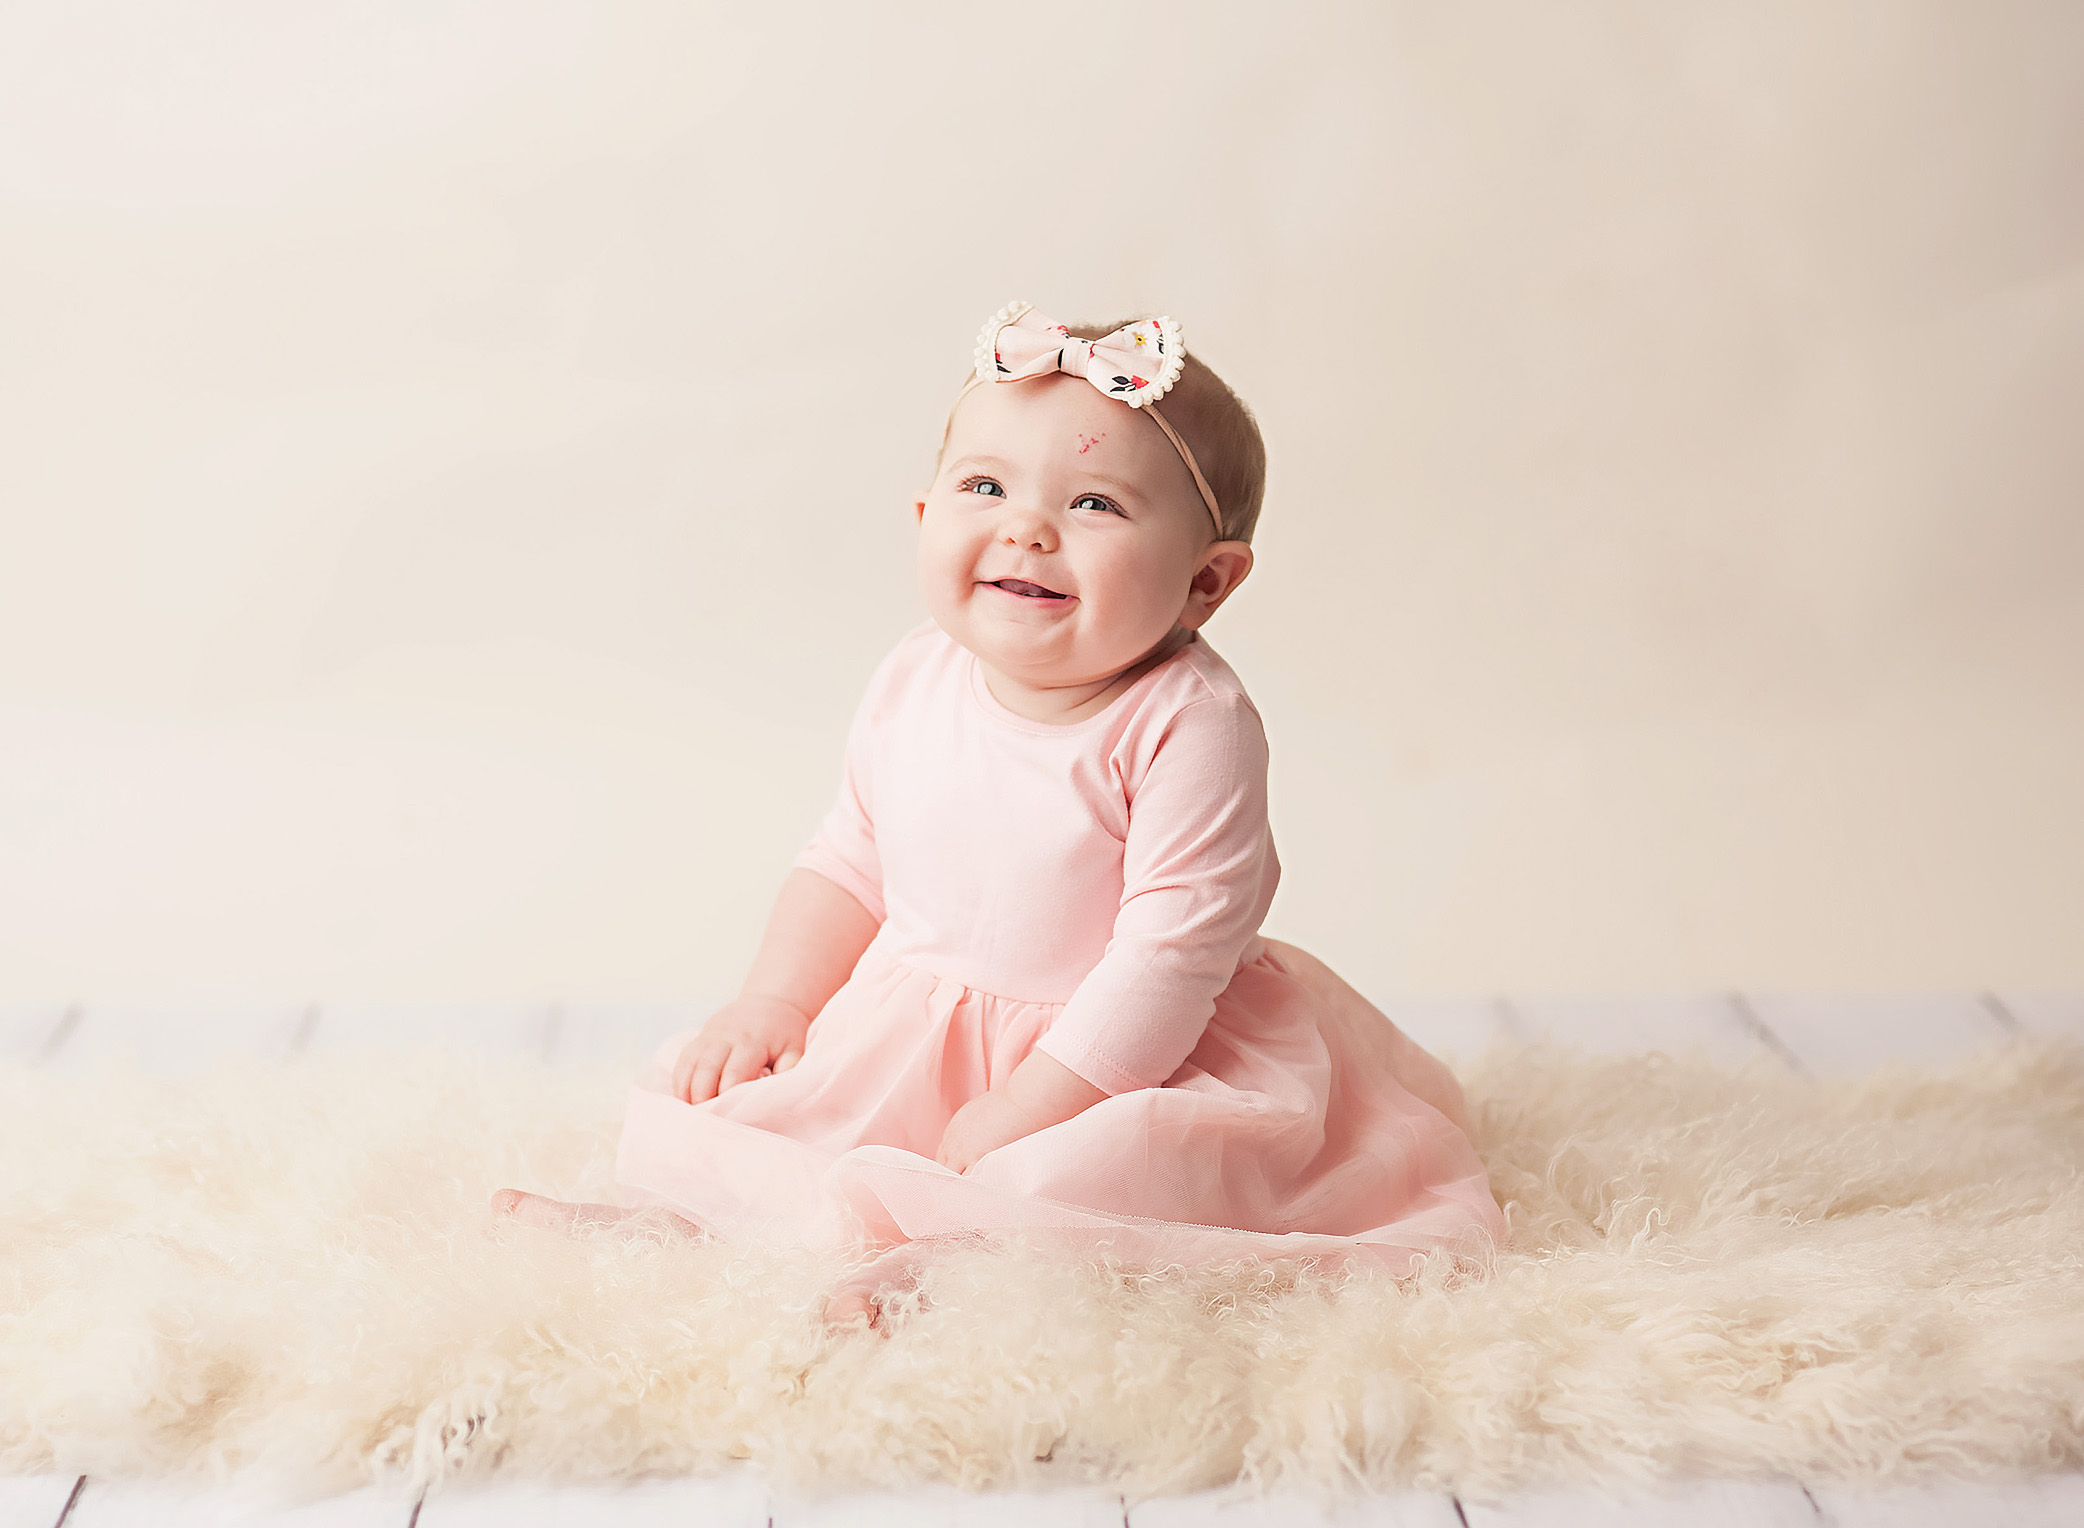 6 month old girl in pink dress